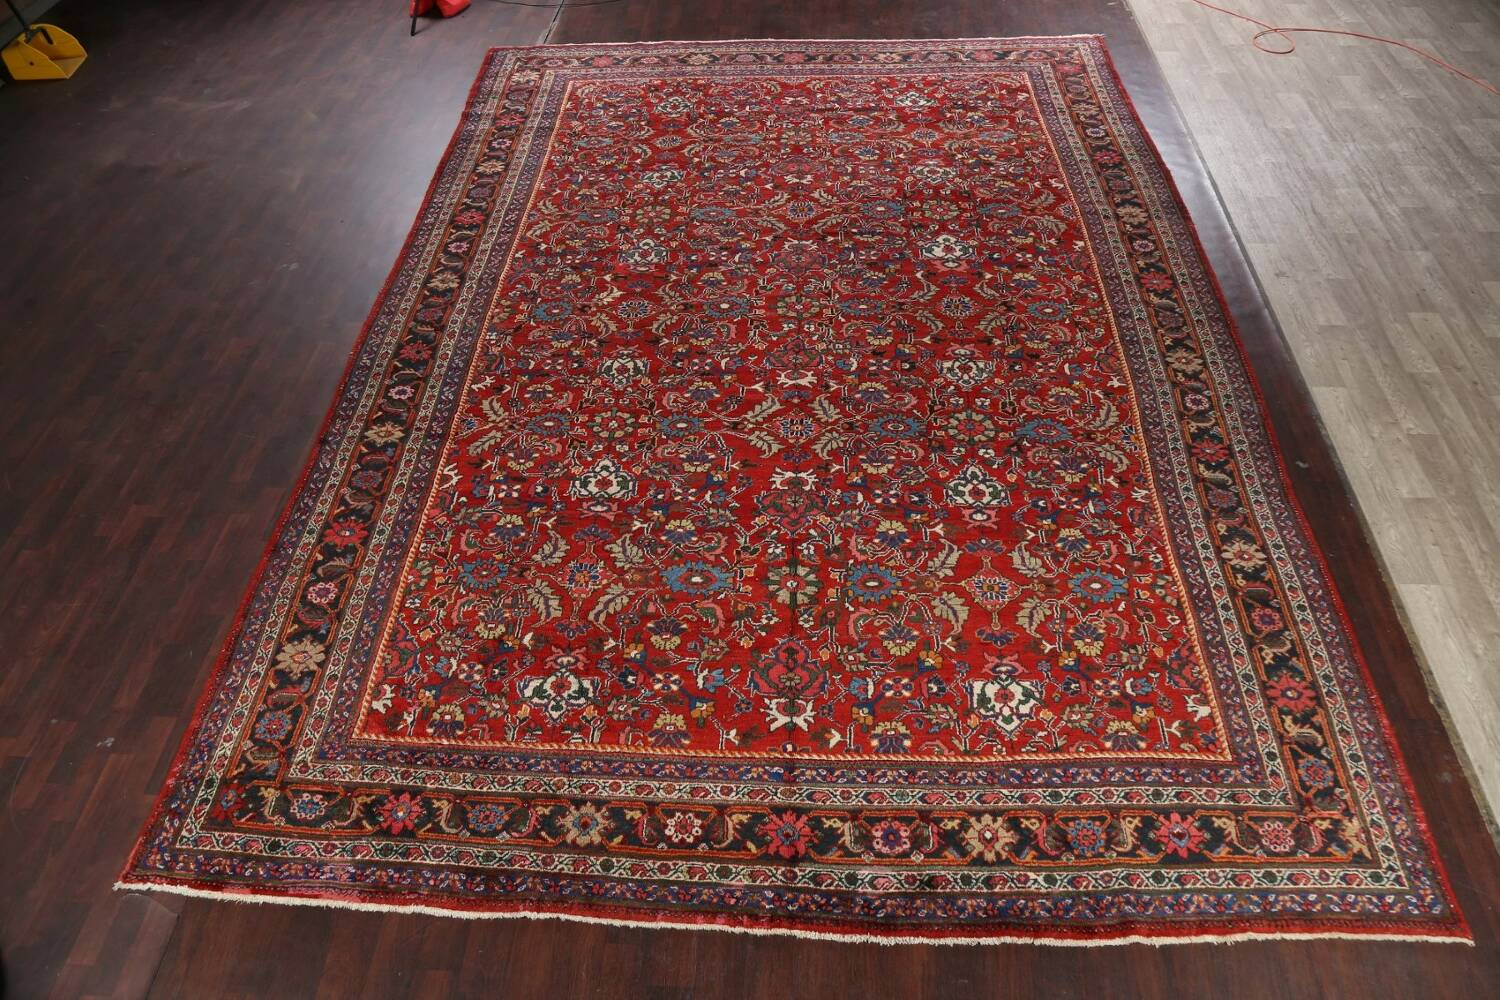 Antique 100% Vegetable Dye Sultanabad Persian Area Rug 12x17 image 2